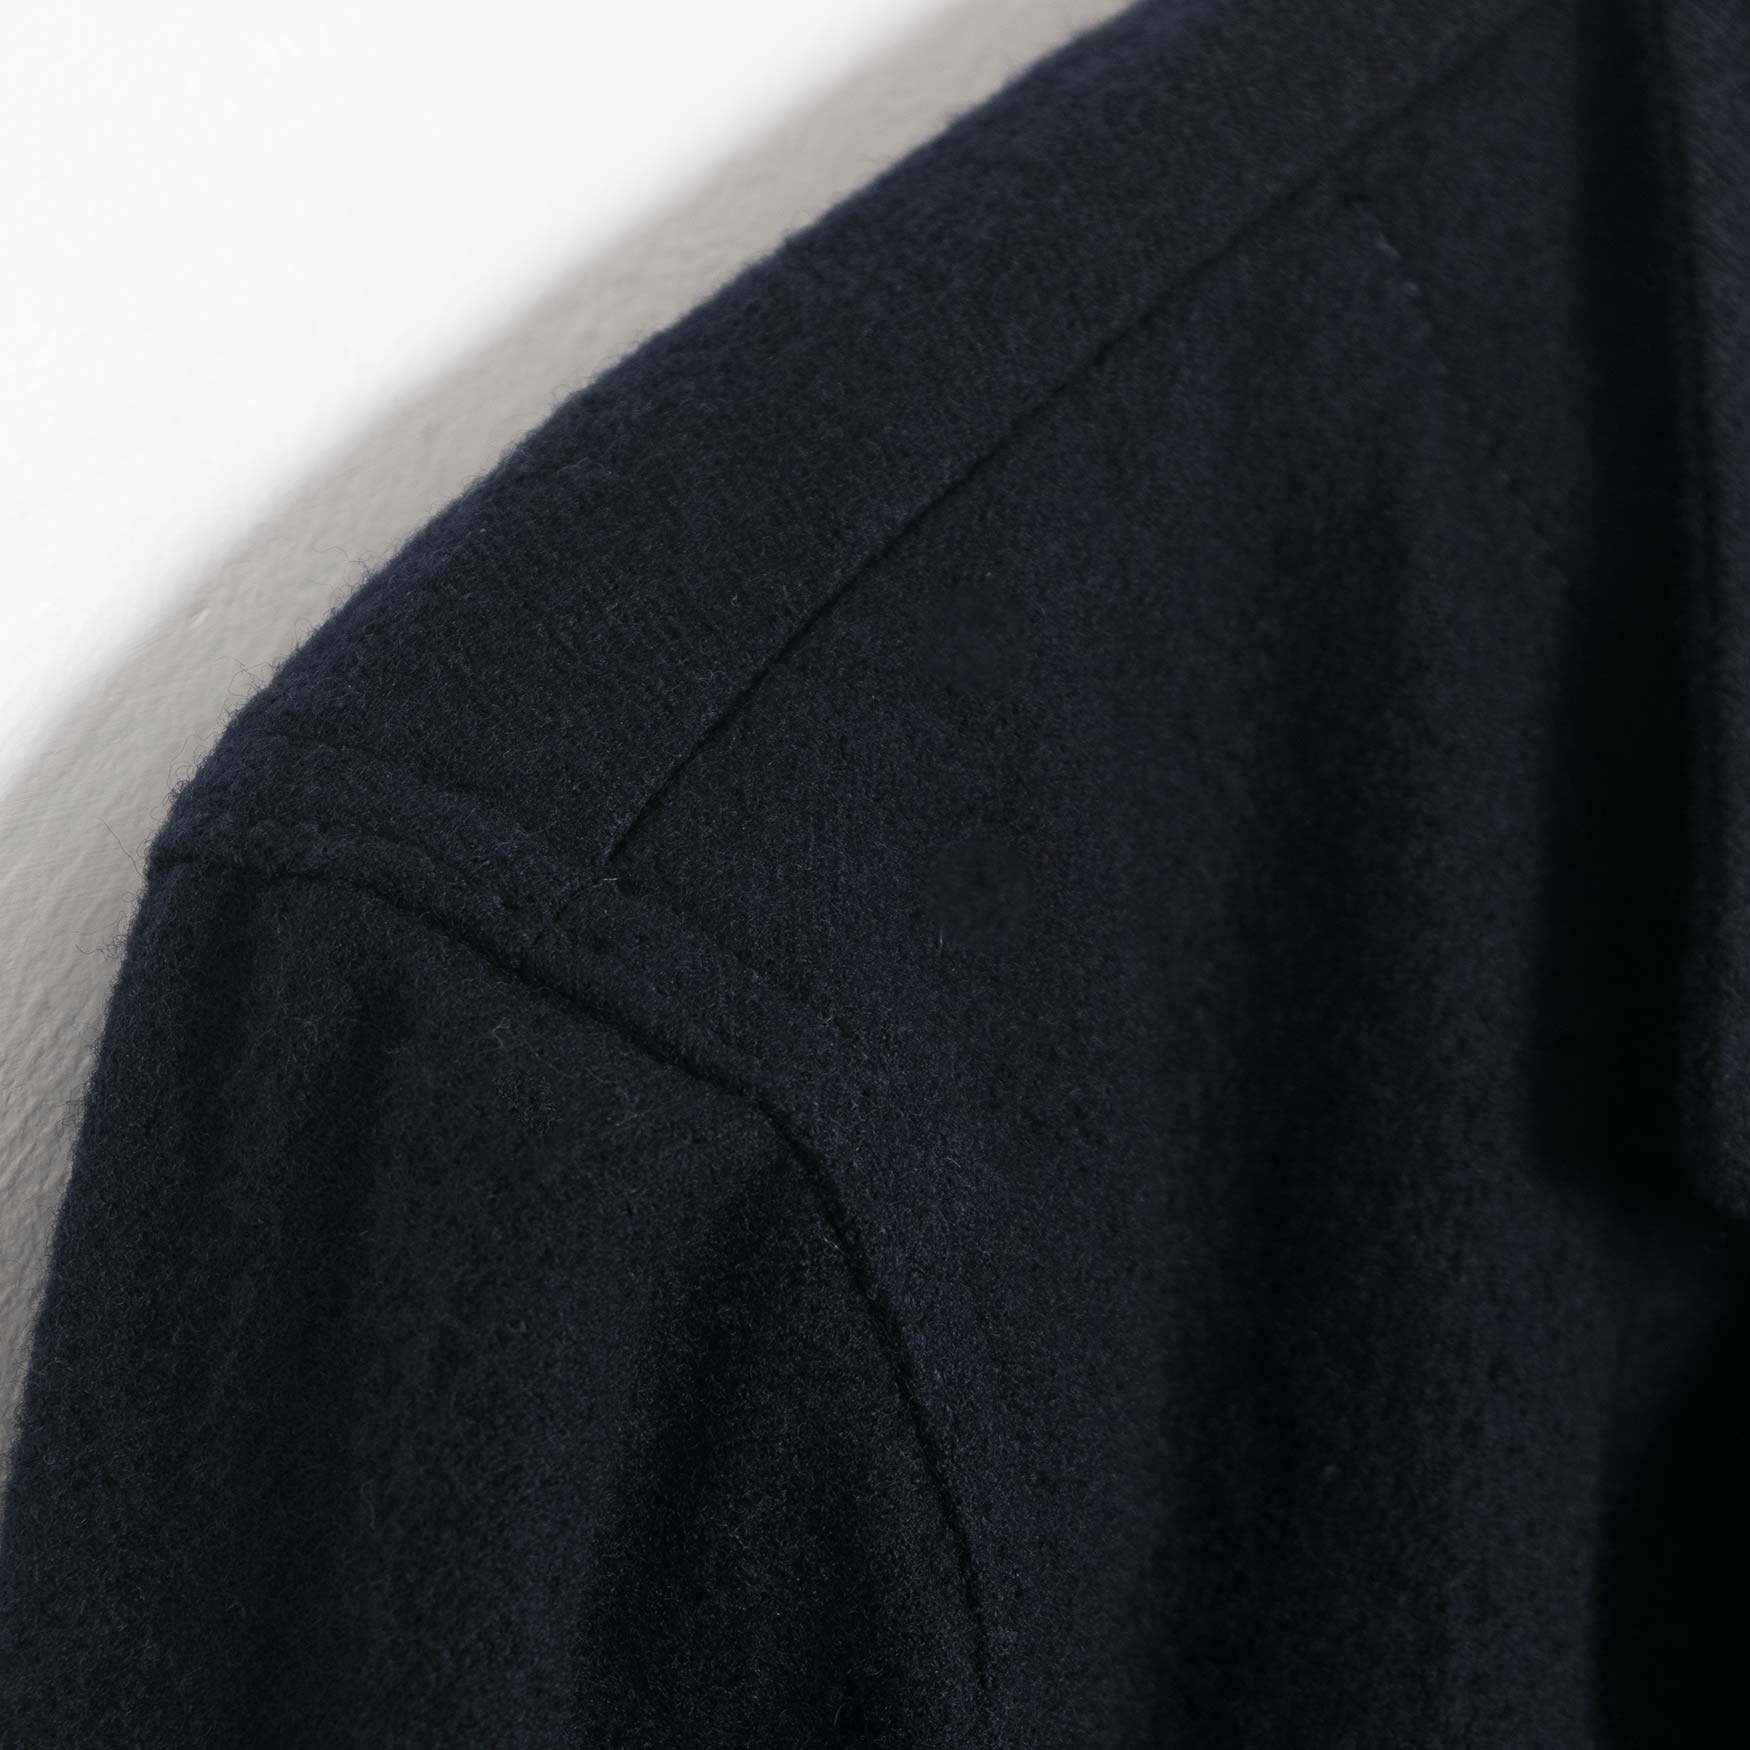 Garbstore Simple Wren Coat - Navy